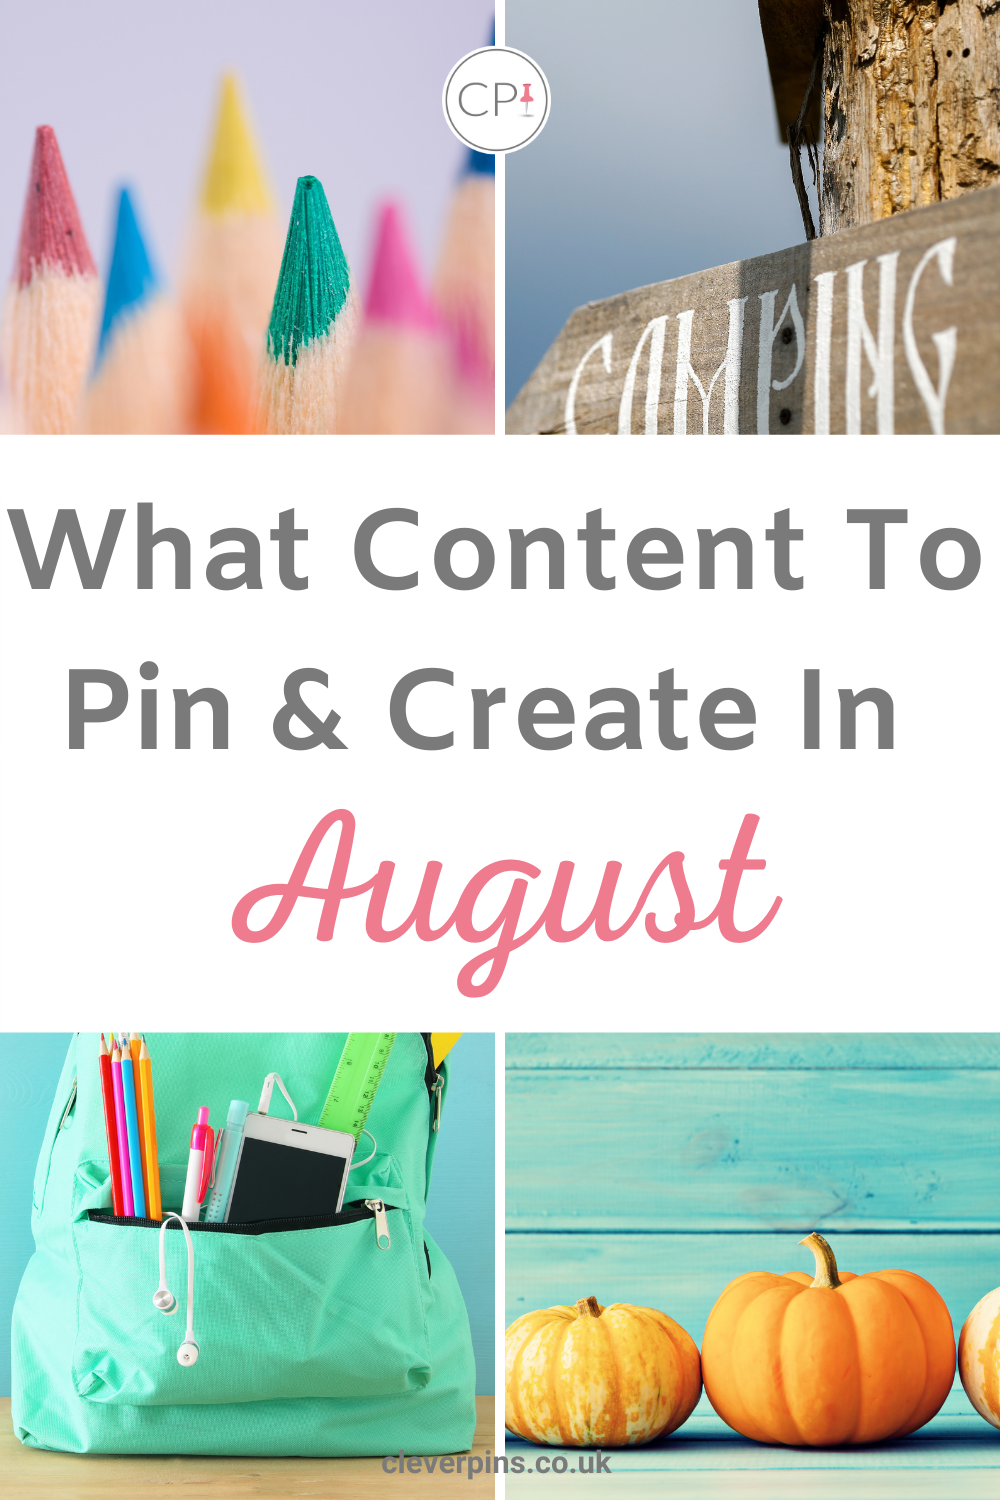 PIn Template for Pinterest August Trends